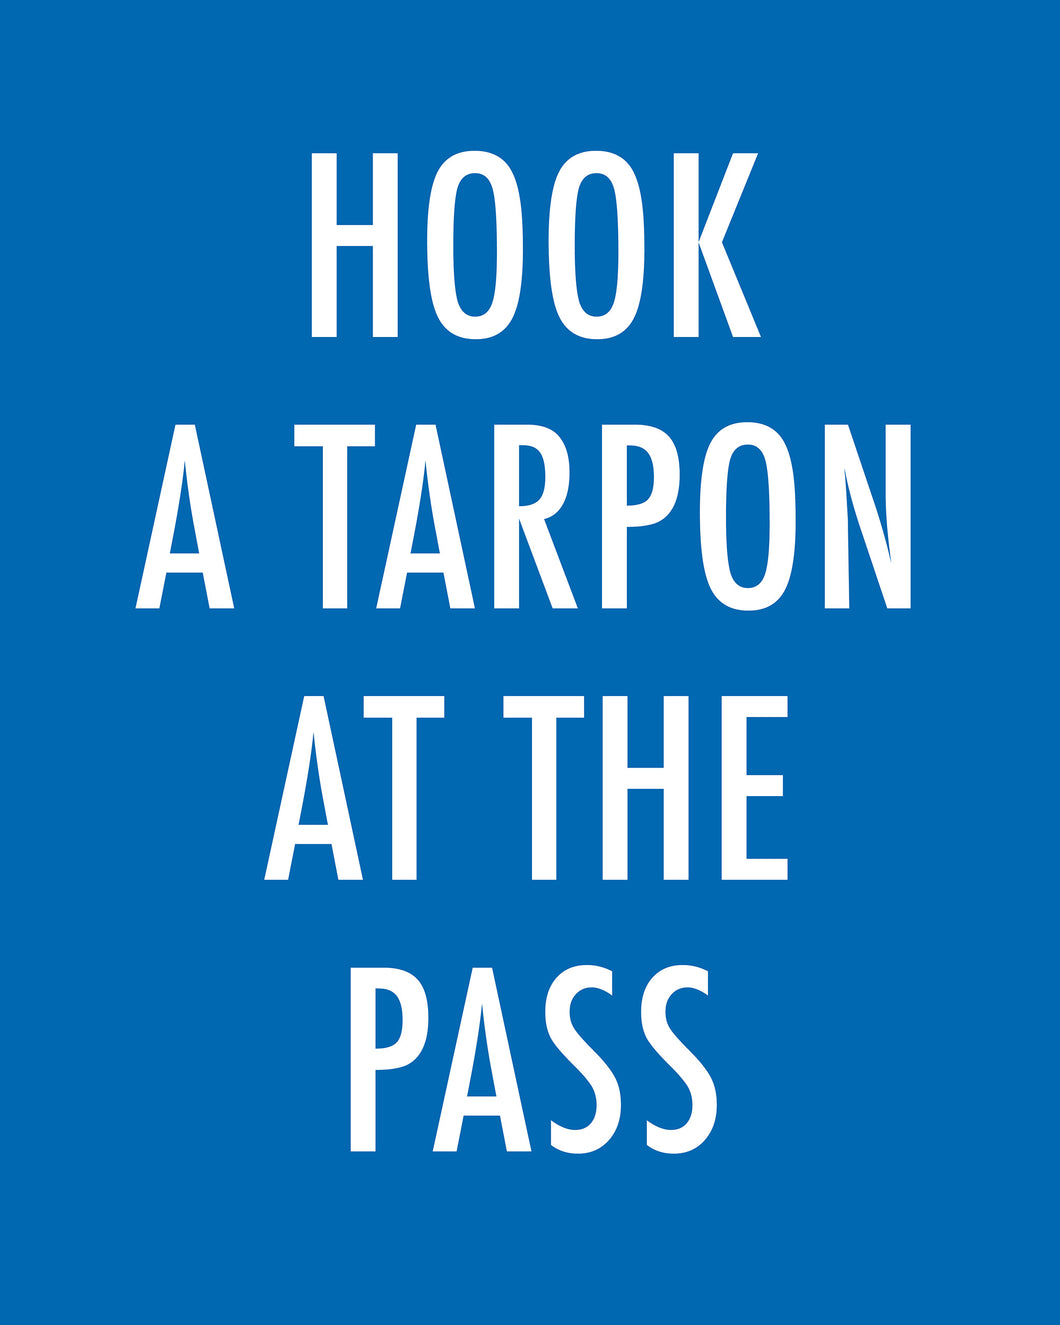 HOOK A TARPON AT THE PASS - Color Pop Print